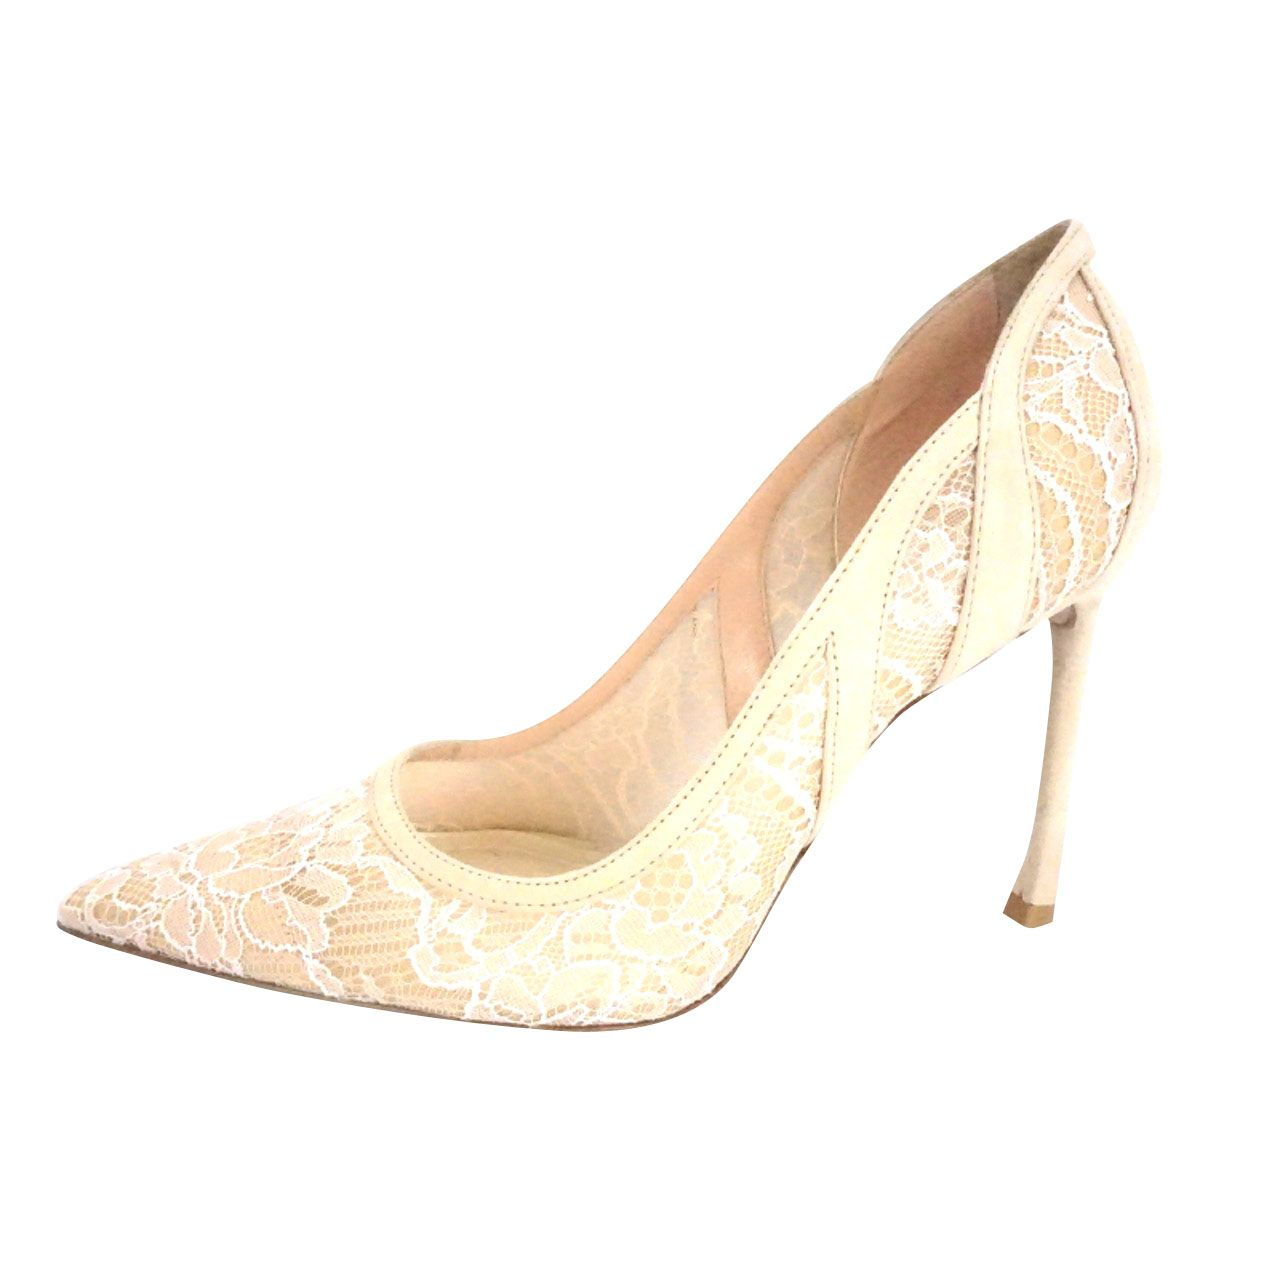 Christian Dior Lingerie Lace Pointed